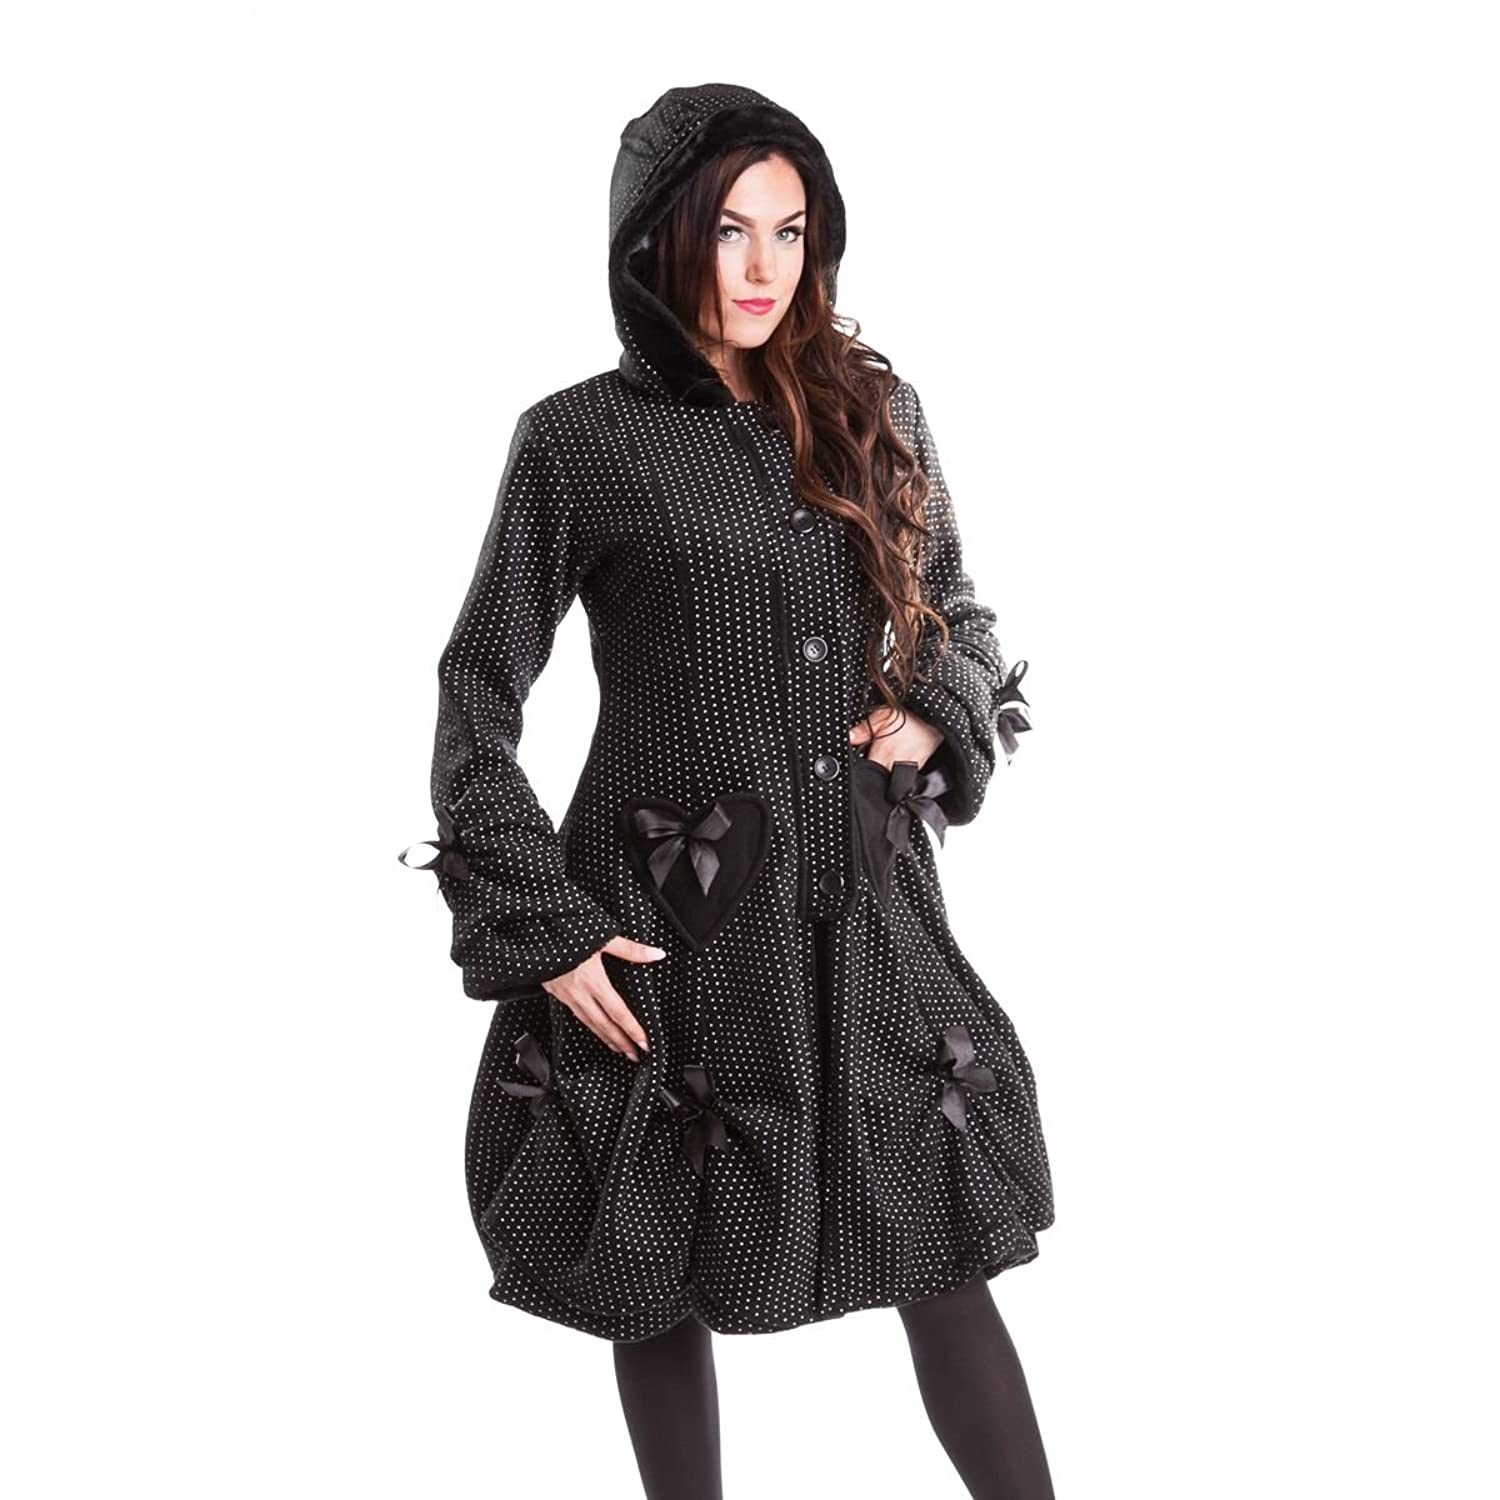 Poizen Industries Gothic Damen Mantel mit Kapuze - Alice Coat Polka Dot Coat mit Schnürung